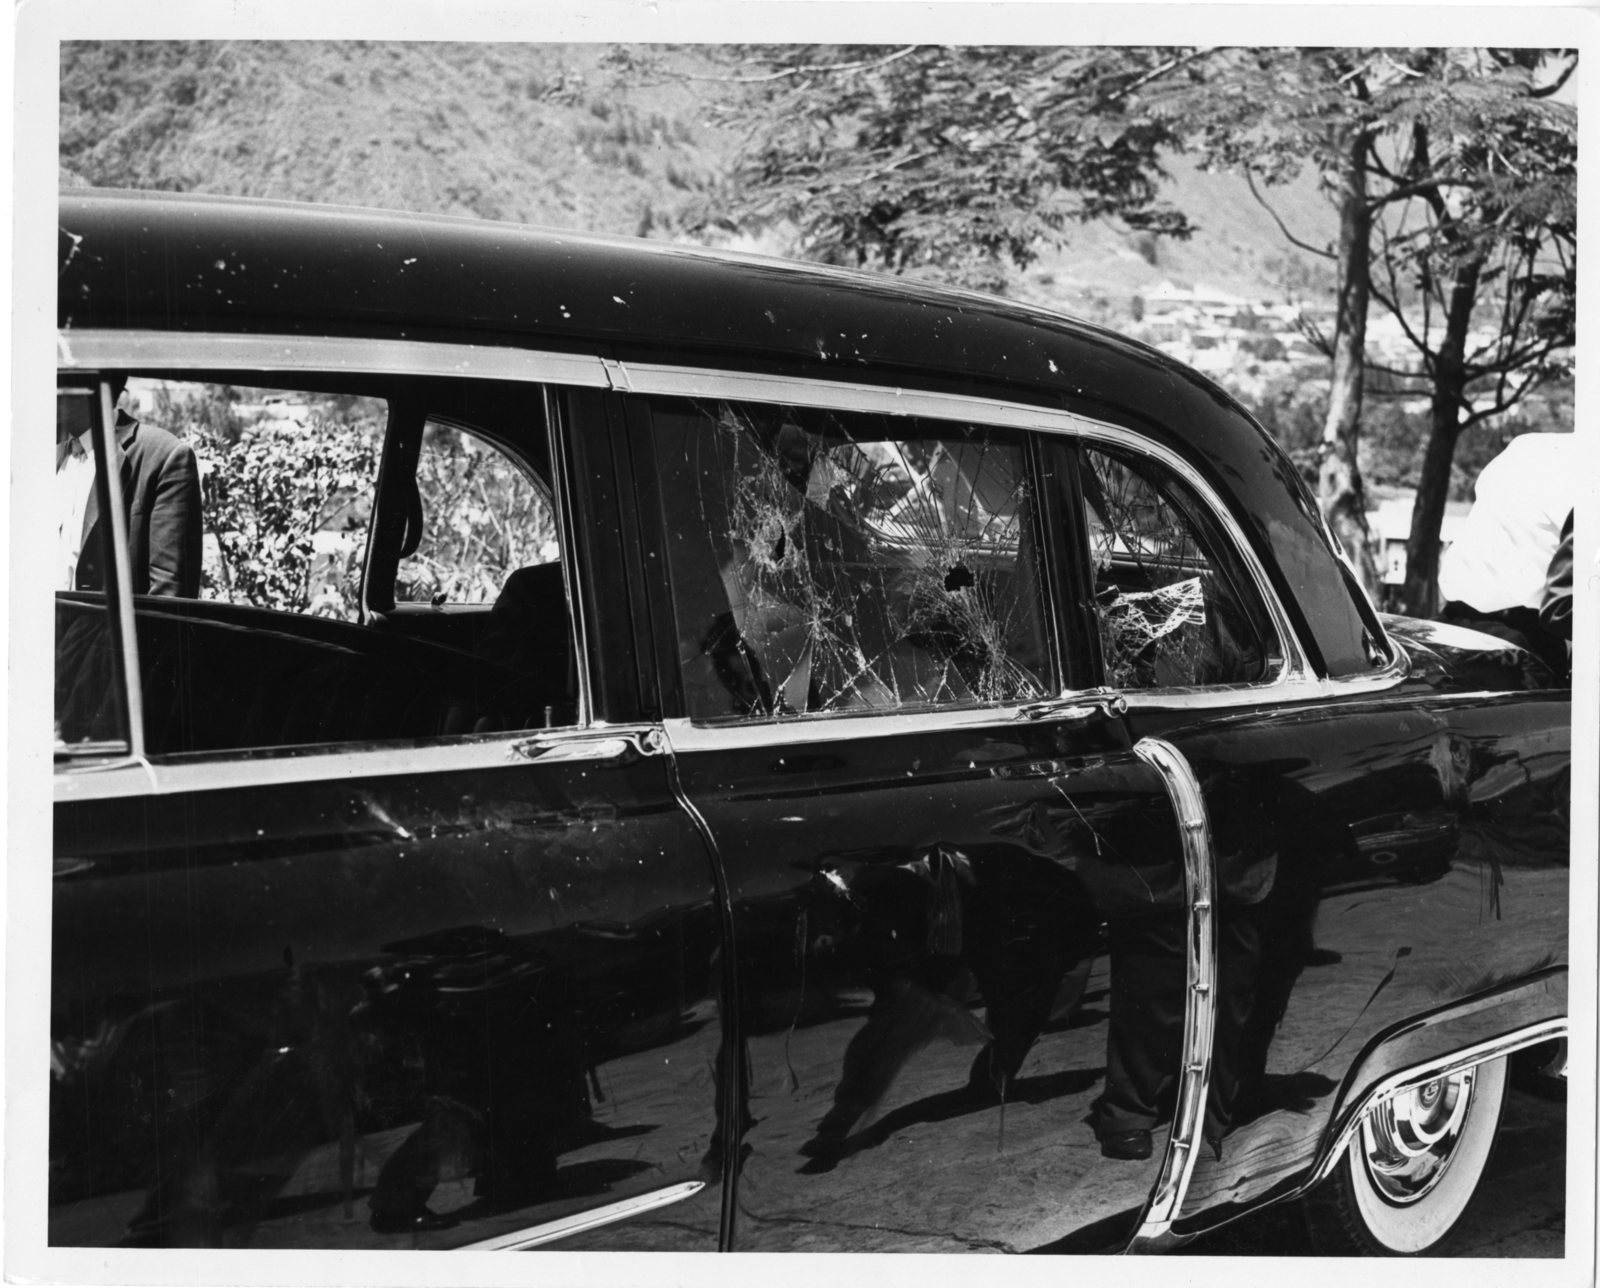 An automobile that has sustained damage following a mob attack in Caracas, Venezuela, targeting Vice President Richard Nixon. Close-up of shattered windows